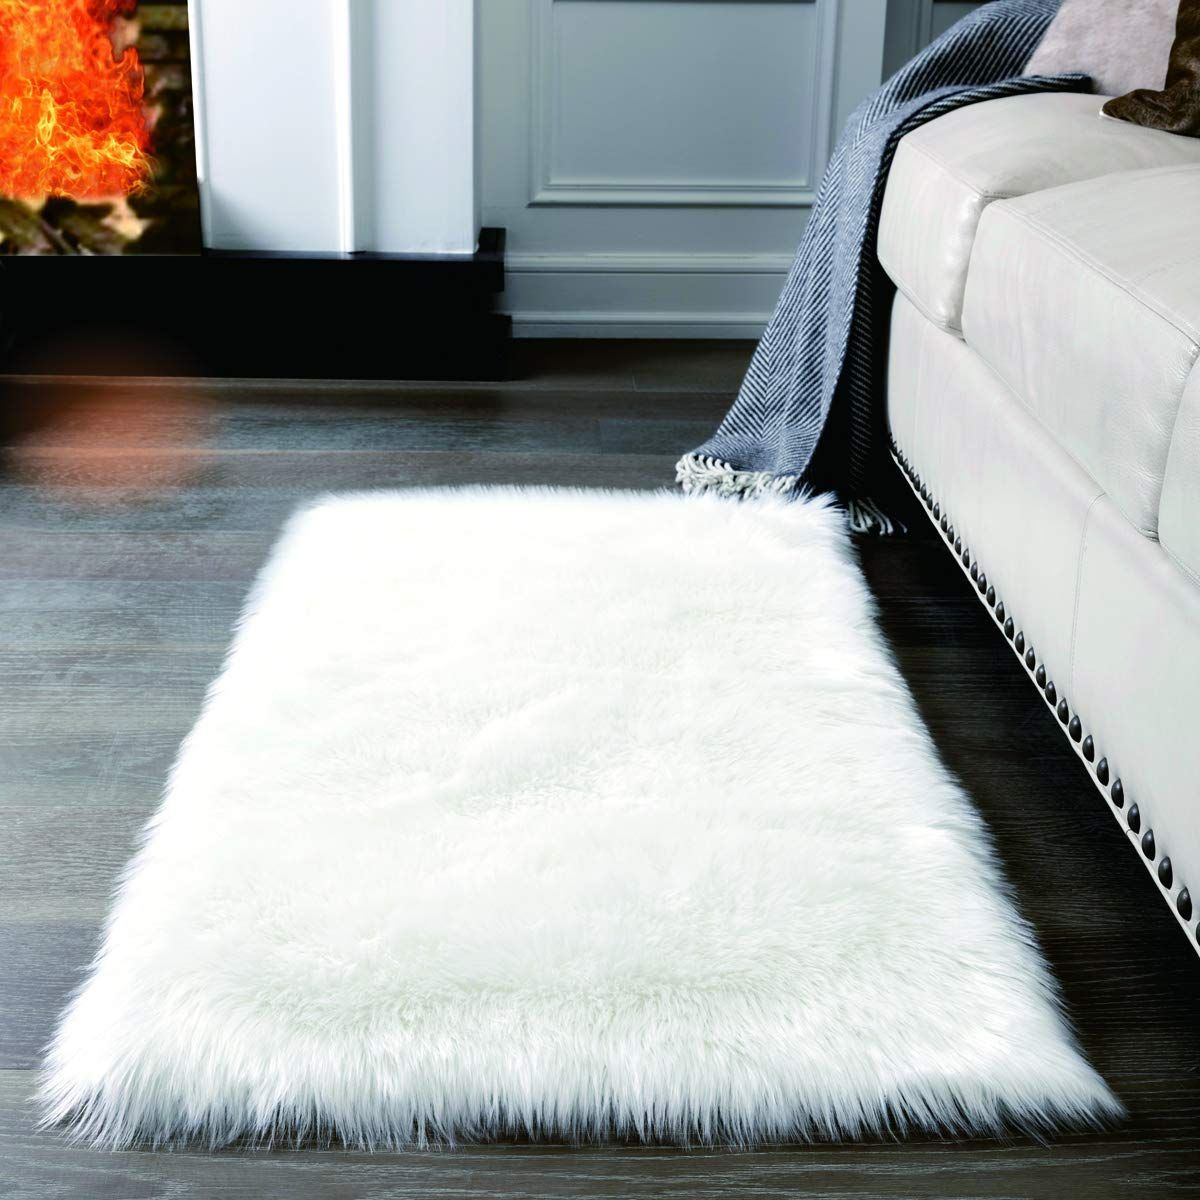 Super Soft White Fluffy Rug Faux Fur Area Rug Fur Rugs For